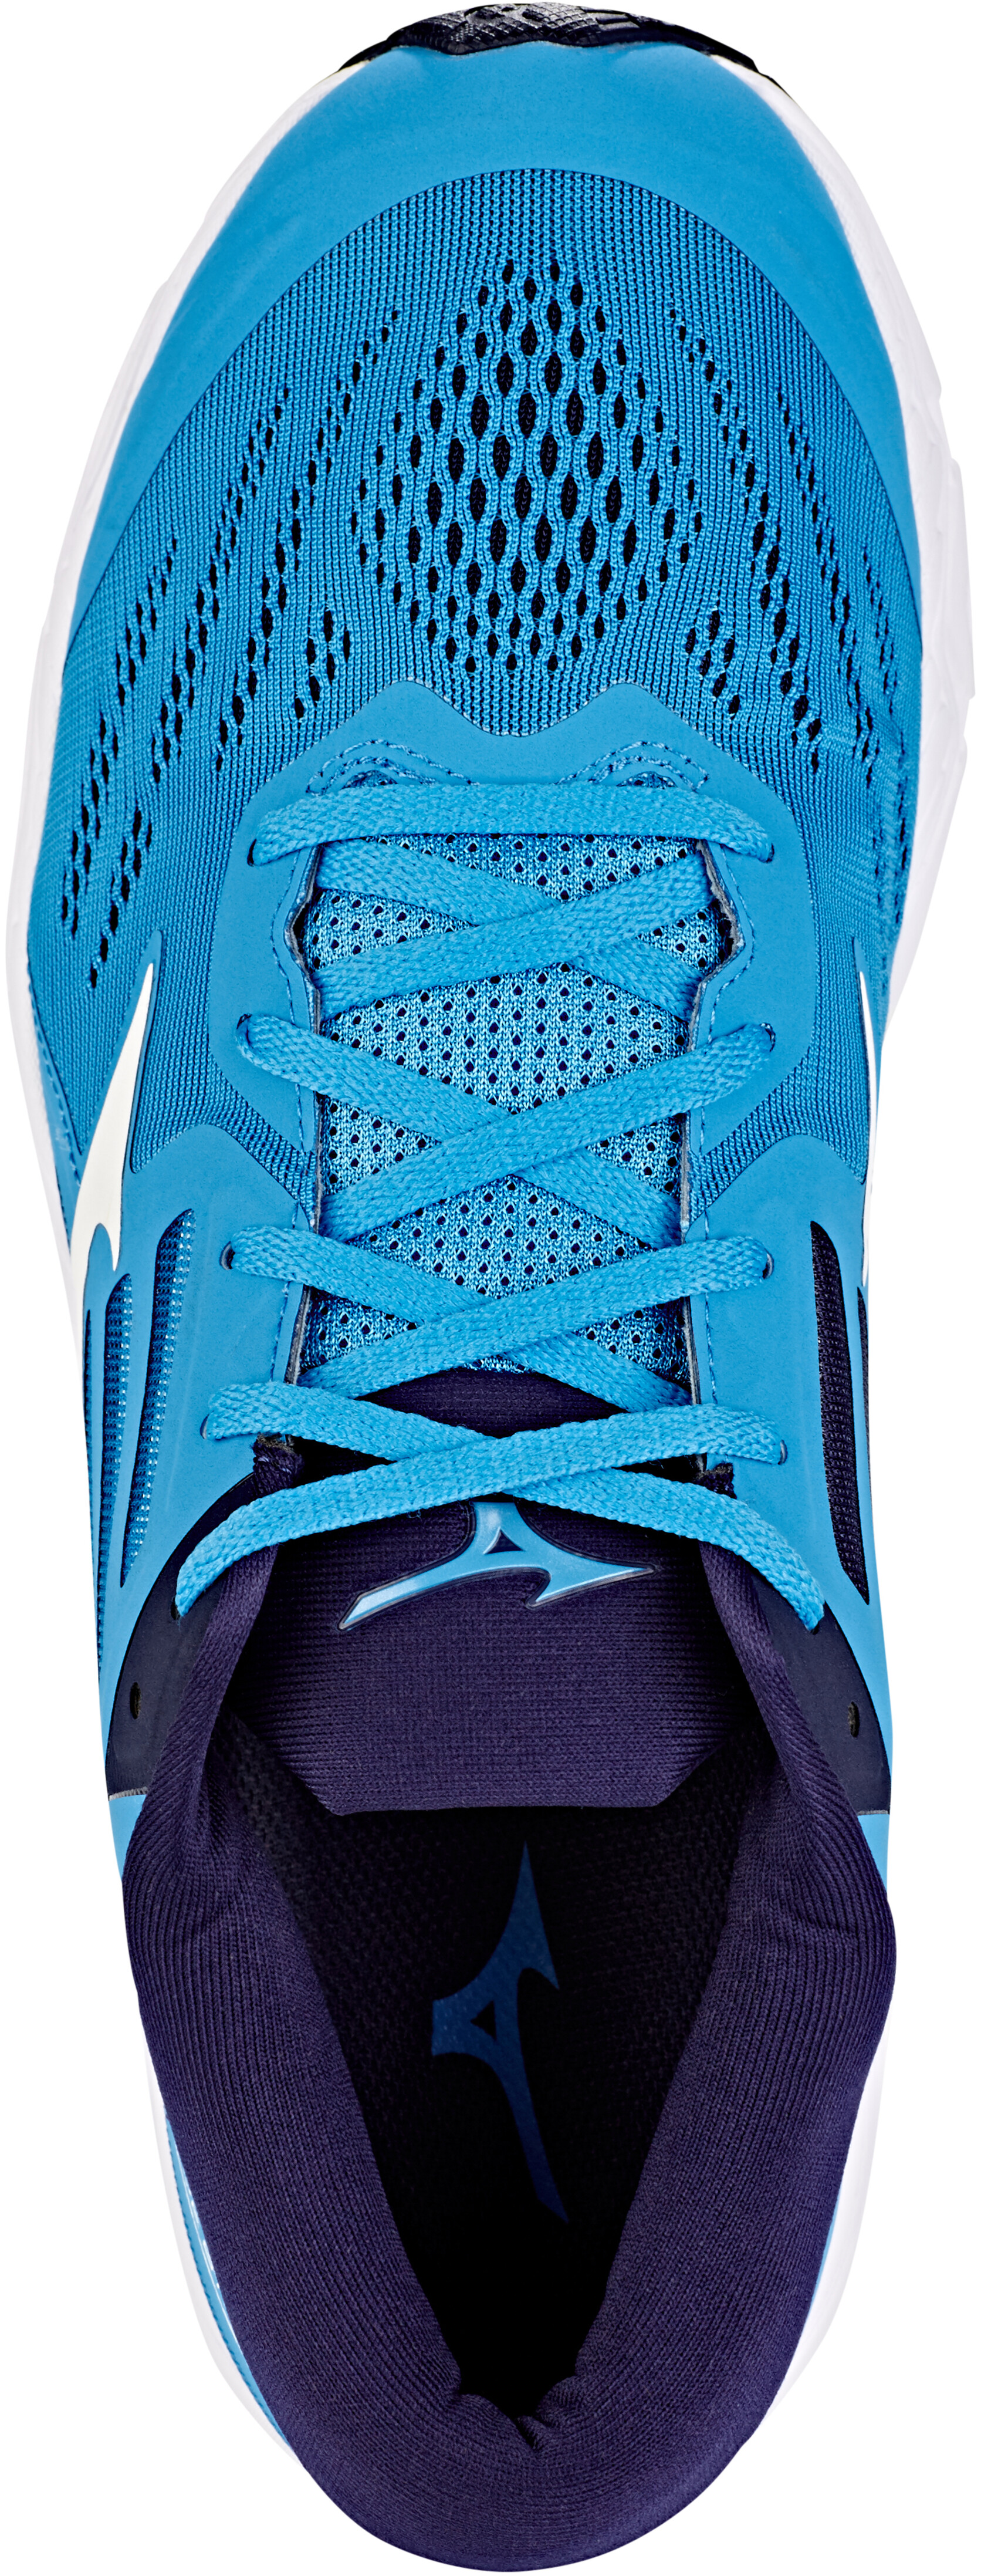 ca924ccad8 Mizuno Wave Stream 2 Shoes Men malibu blue/white/blue wing teal at ...